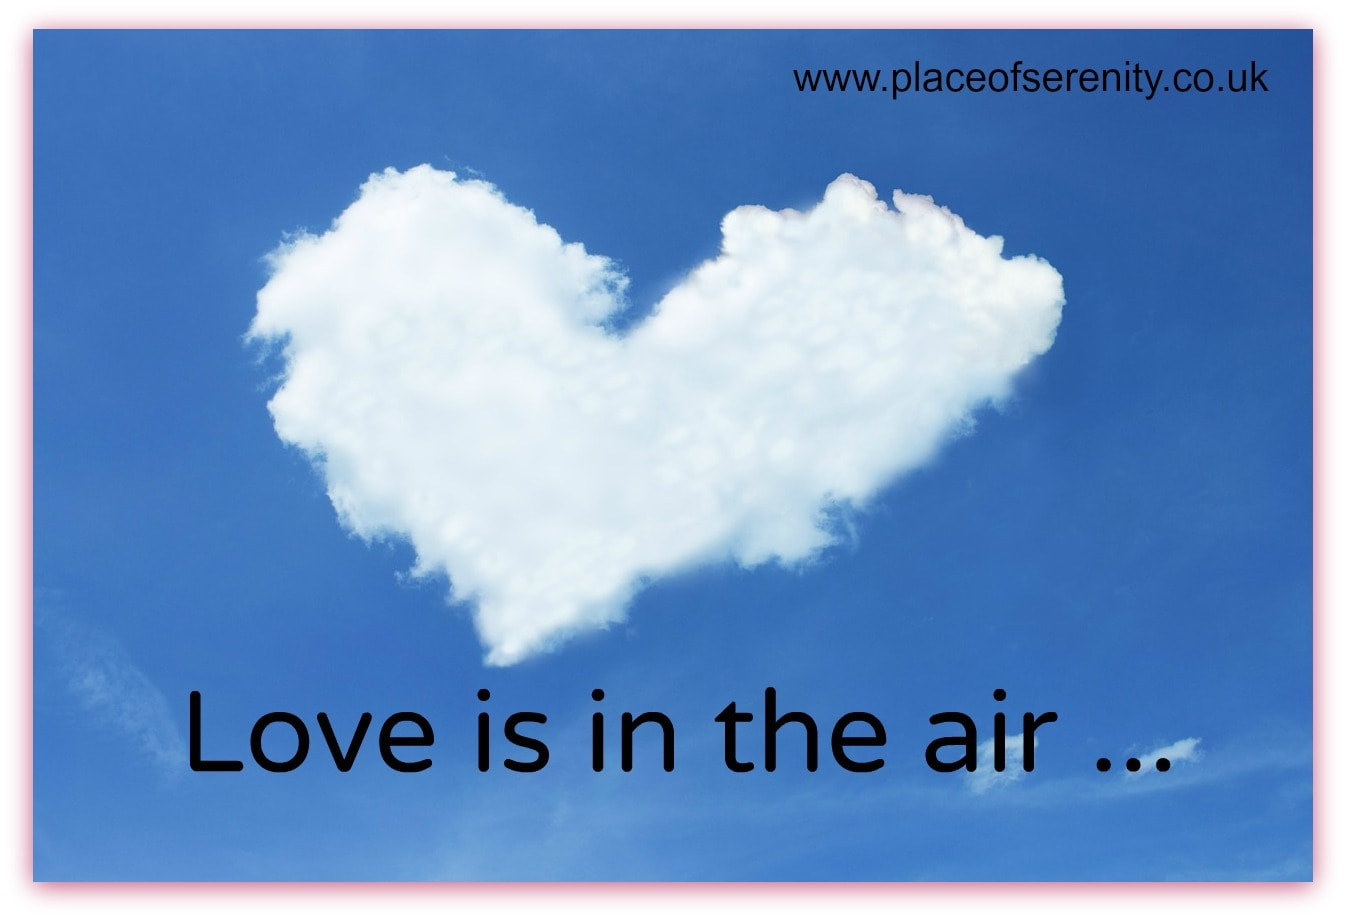 Love is in the air dating site. best dj courses in bangalore dating.